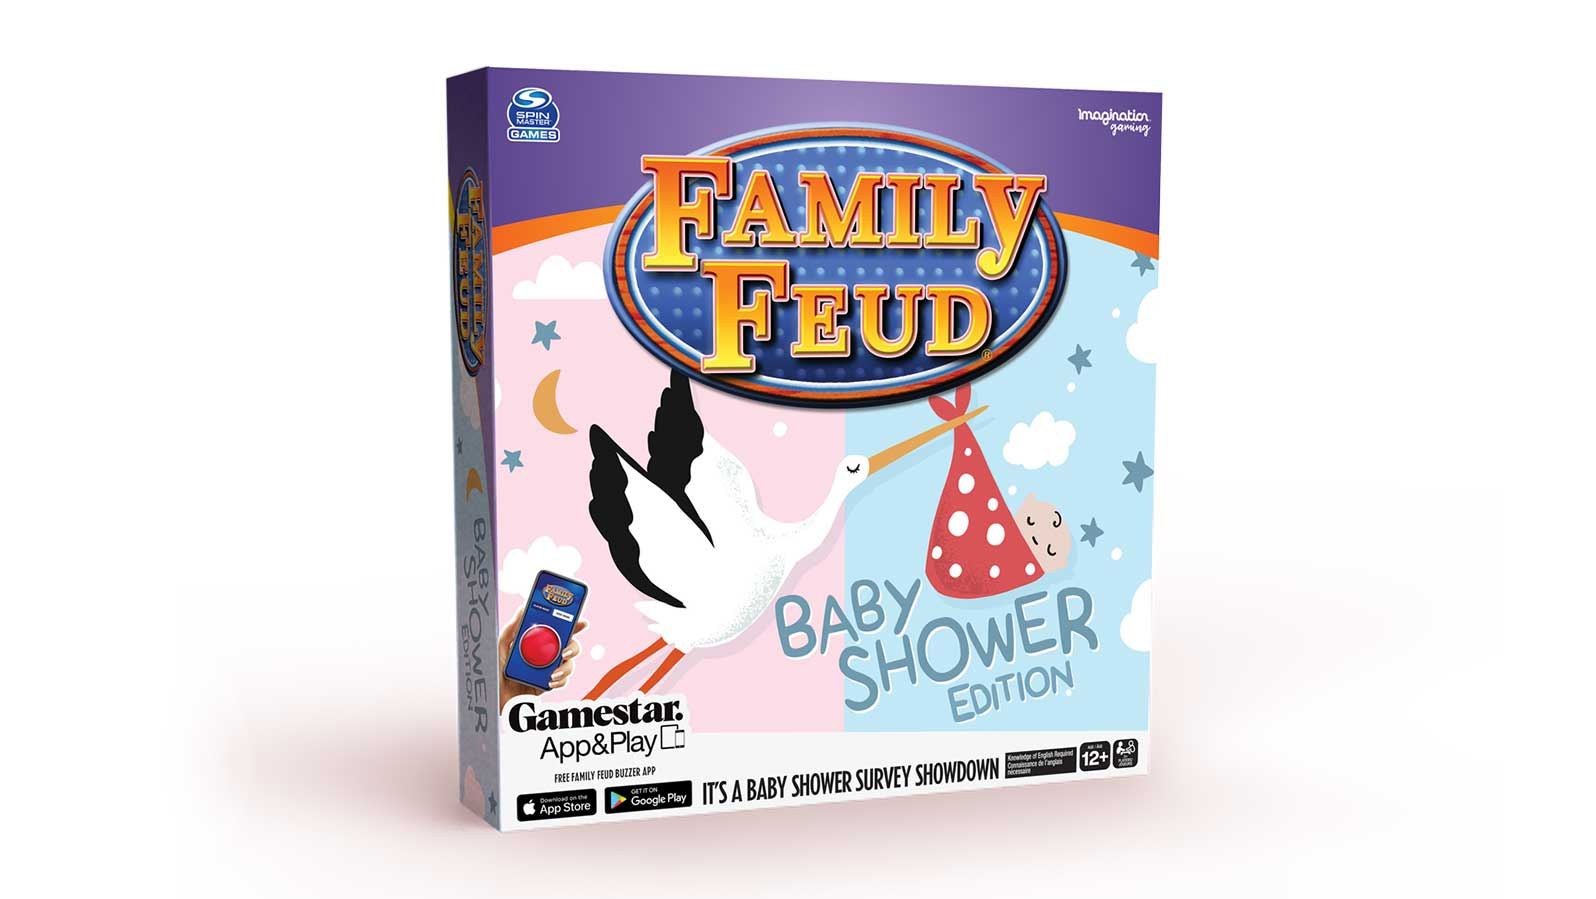 Family Feud Game Baby Shower Edition